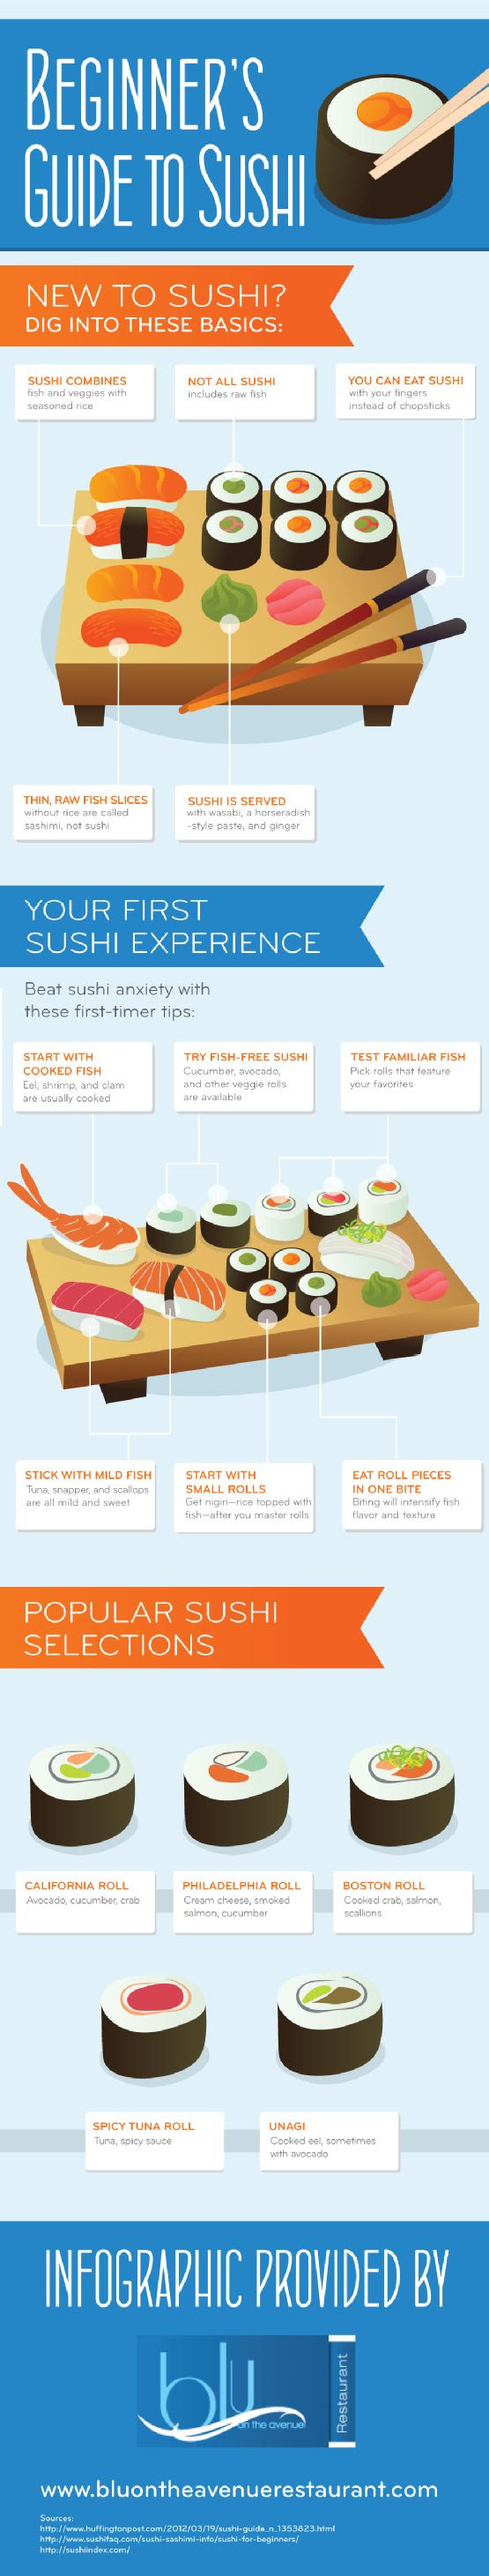 The Beginner's Guide to Sushi